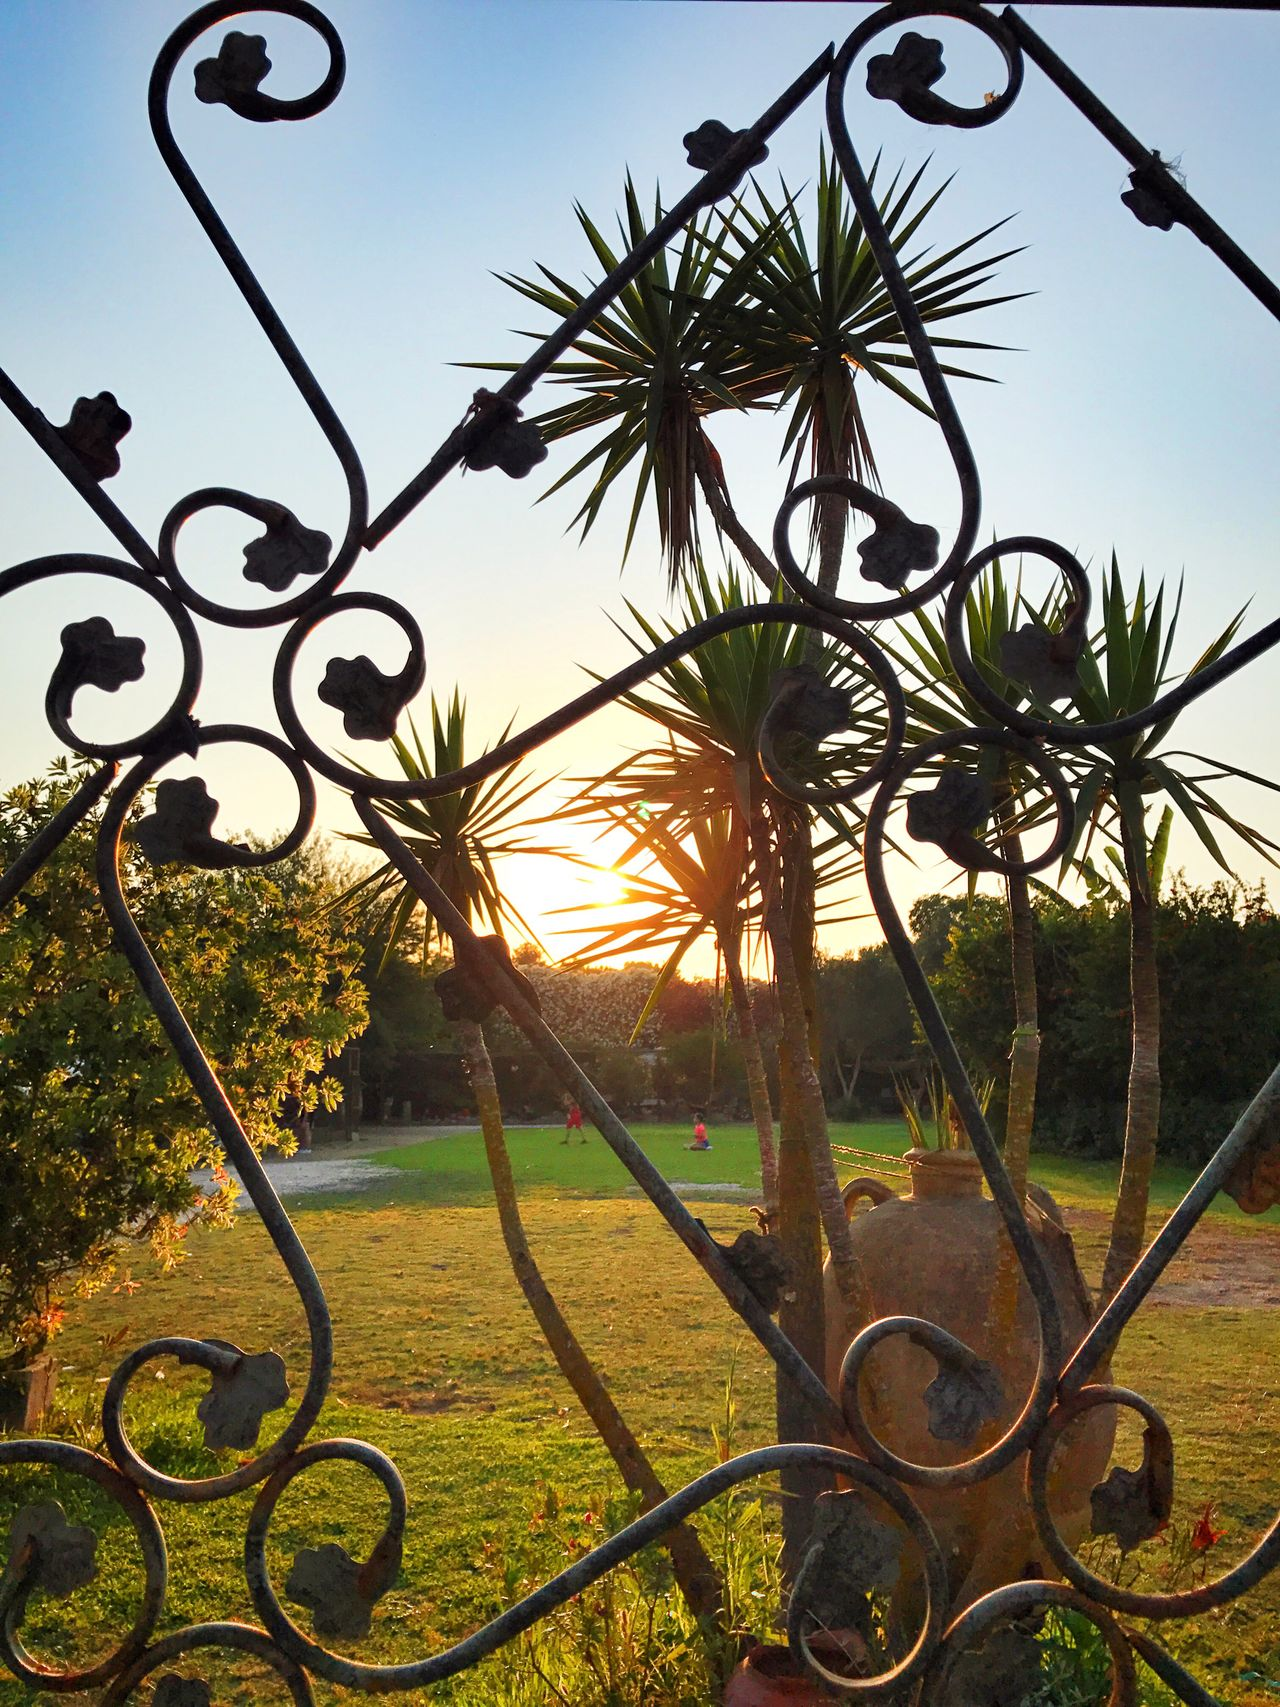 Teatro Greco - Siracusa Beauty In Nature Tranquil Scene Tranquility Metal Tree Palm Tree Outdoors No People Growth Nature Wrought Iron Day Grass Beauty In Nature Sky Close-up Sun Sunset Sunlight Sunset_collection Sunset Silhouettes Sunny Day Sunny Sun_collection